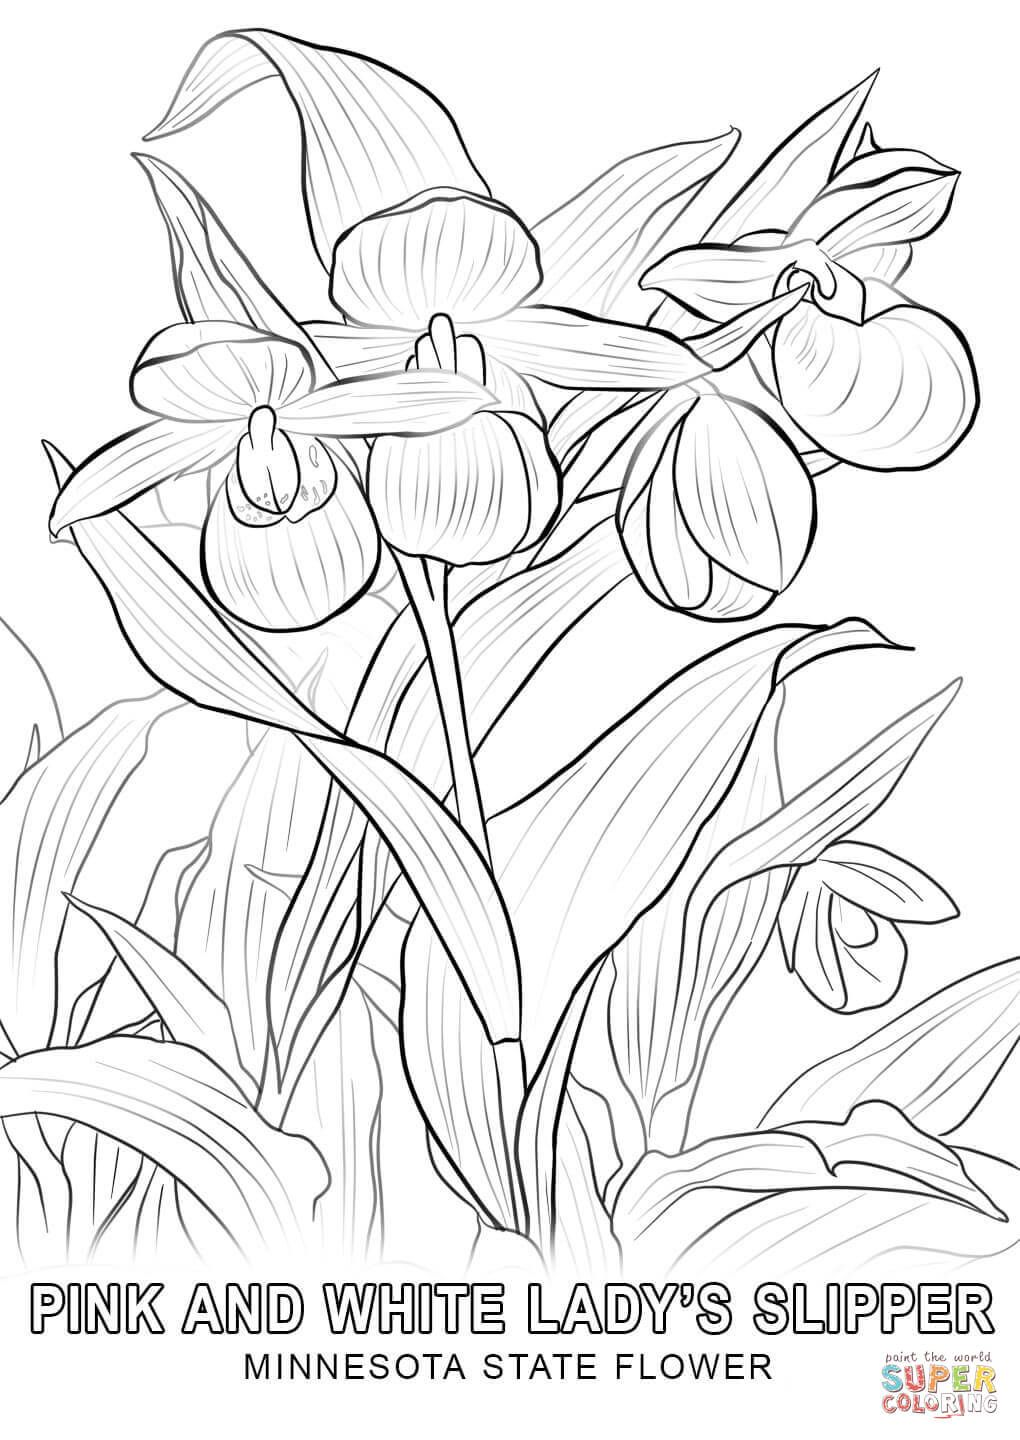 Flower drawings on pinterest dover publications coloring pages and - Minnesota State Flower Coloring Page From Minnesota Category Select From 25960 Printable Crafts Of Cartoons Nature Animals Bible And Many More